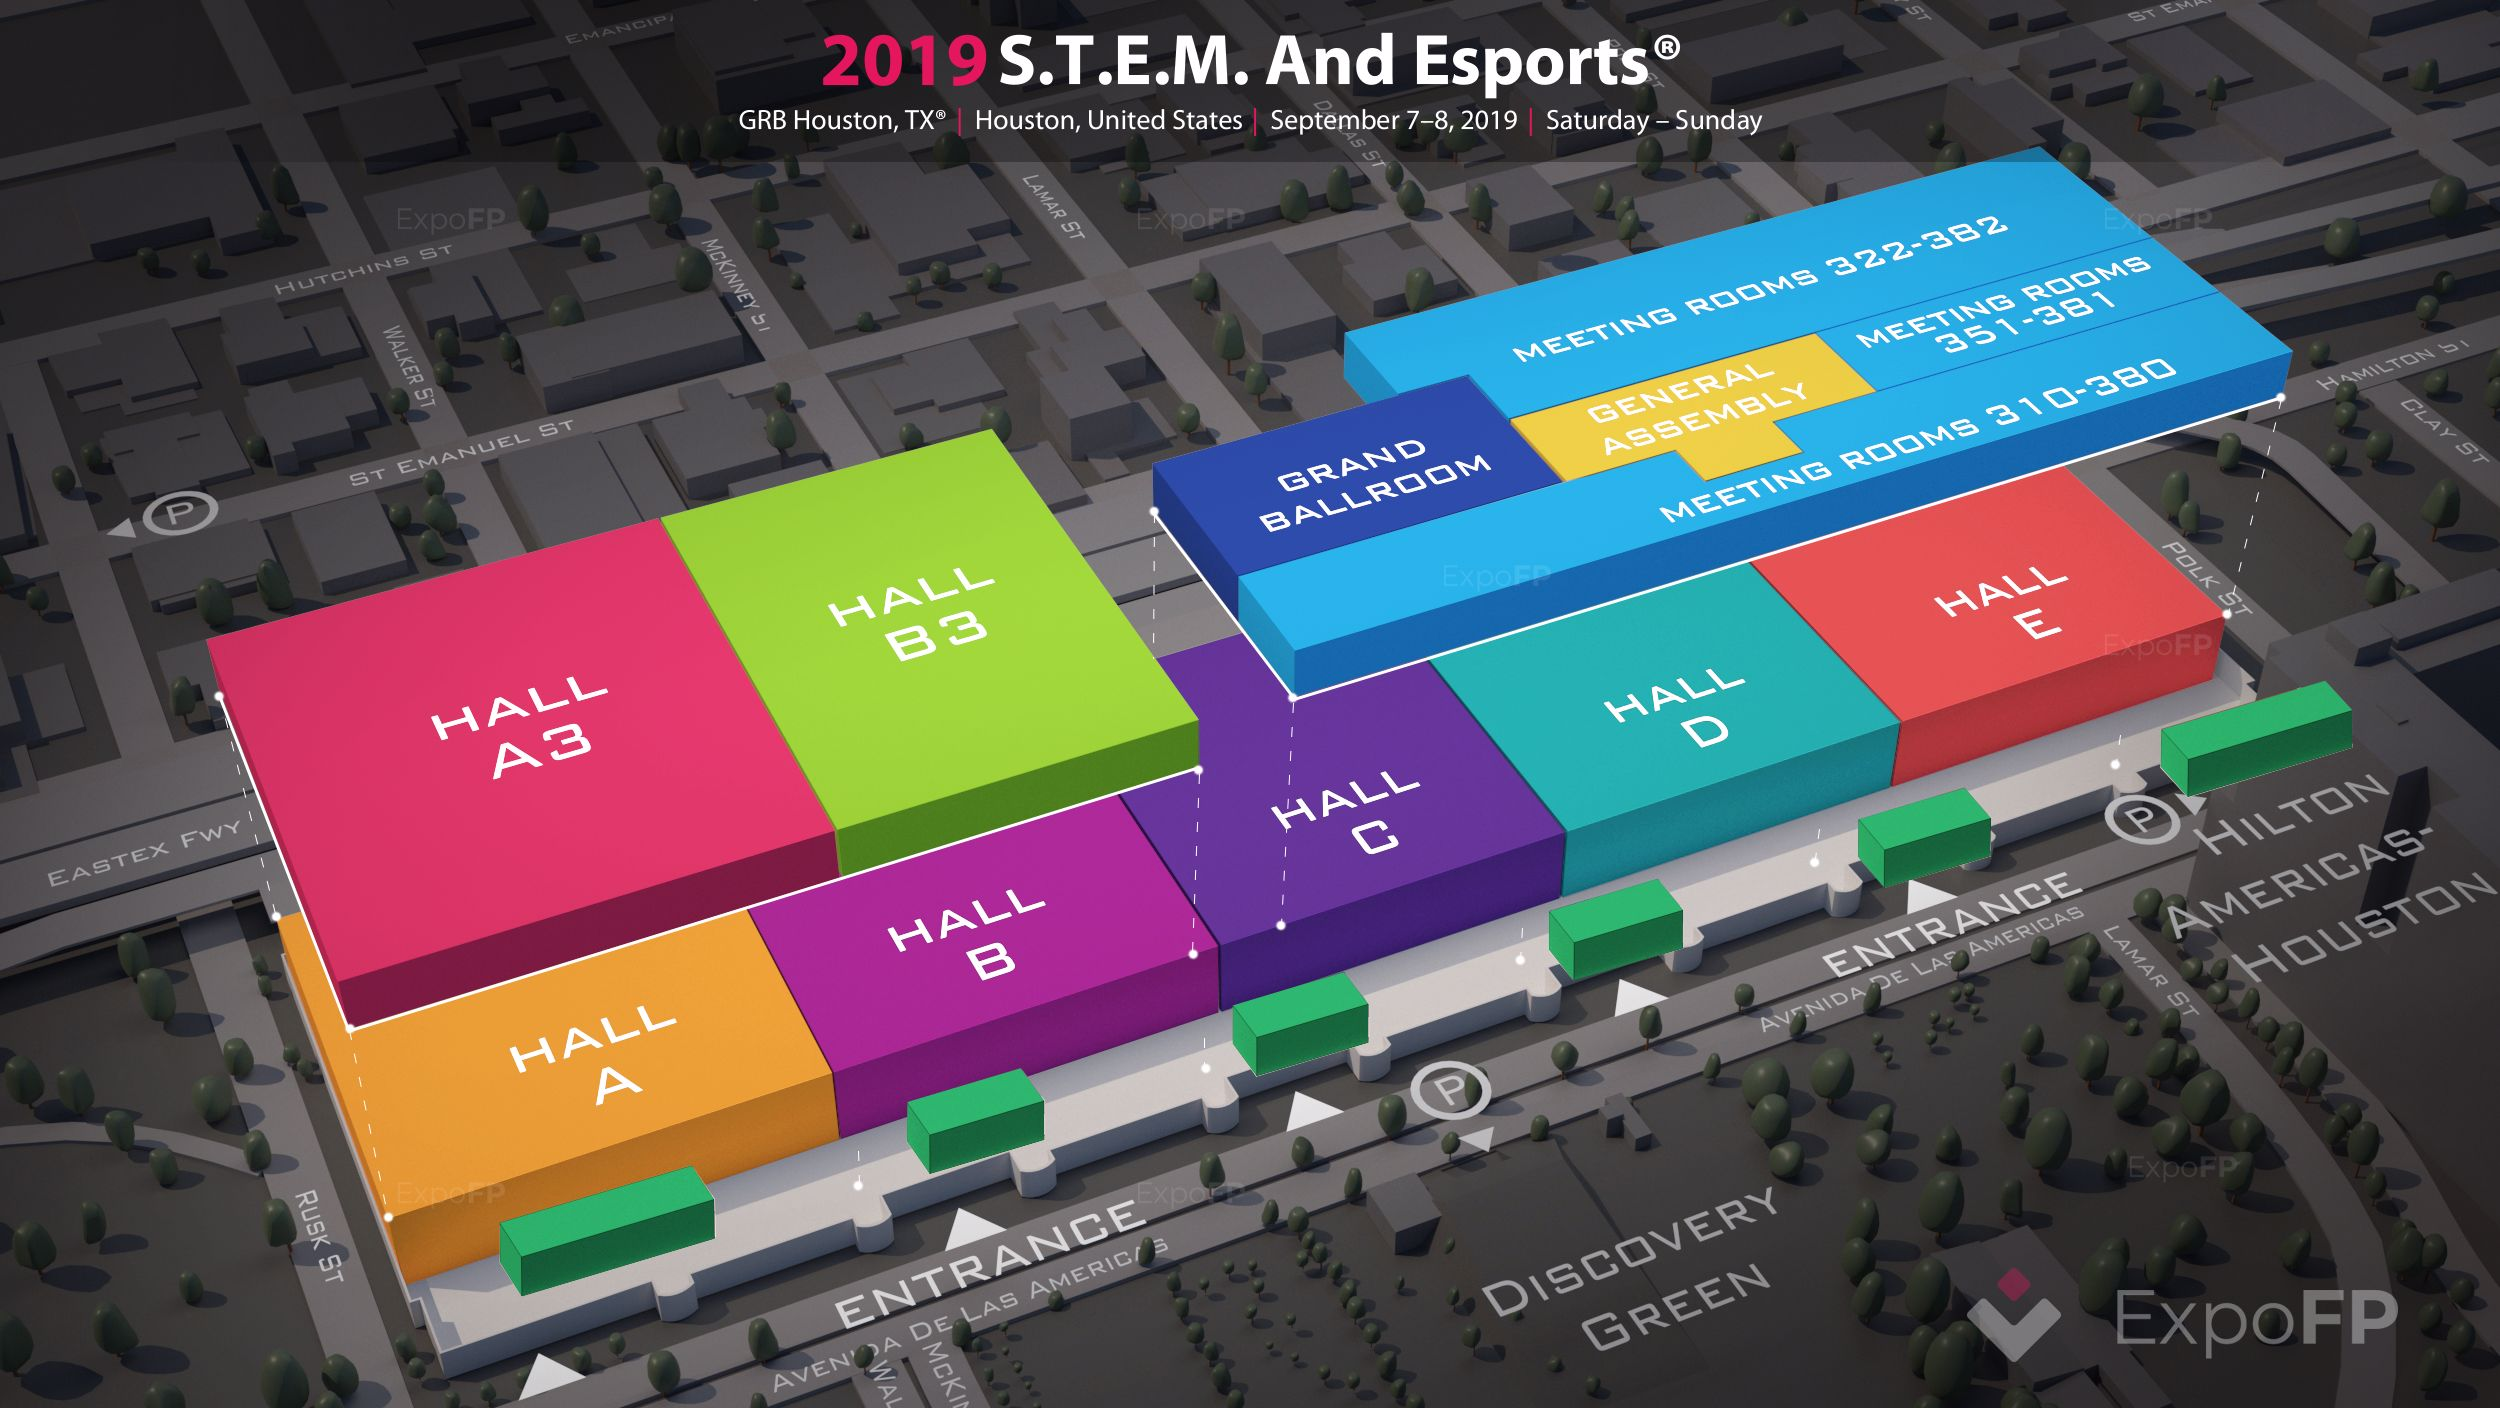 S T E M  and Esports 2019 in GRB Houston